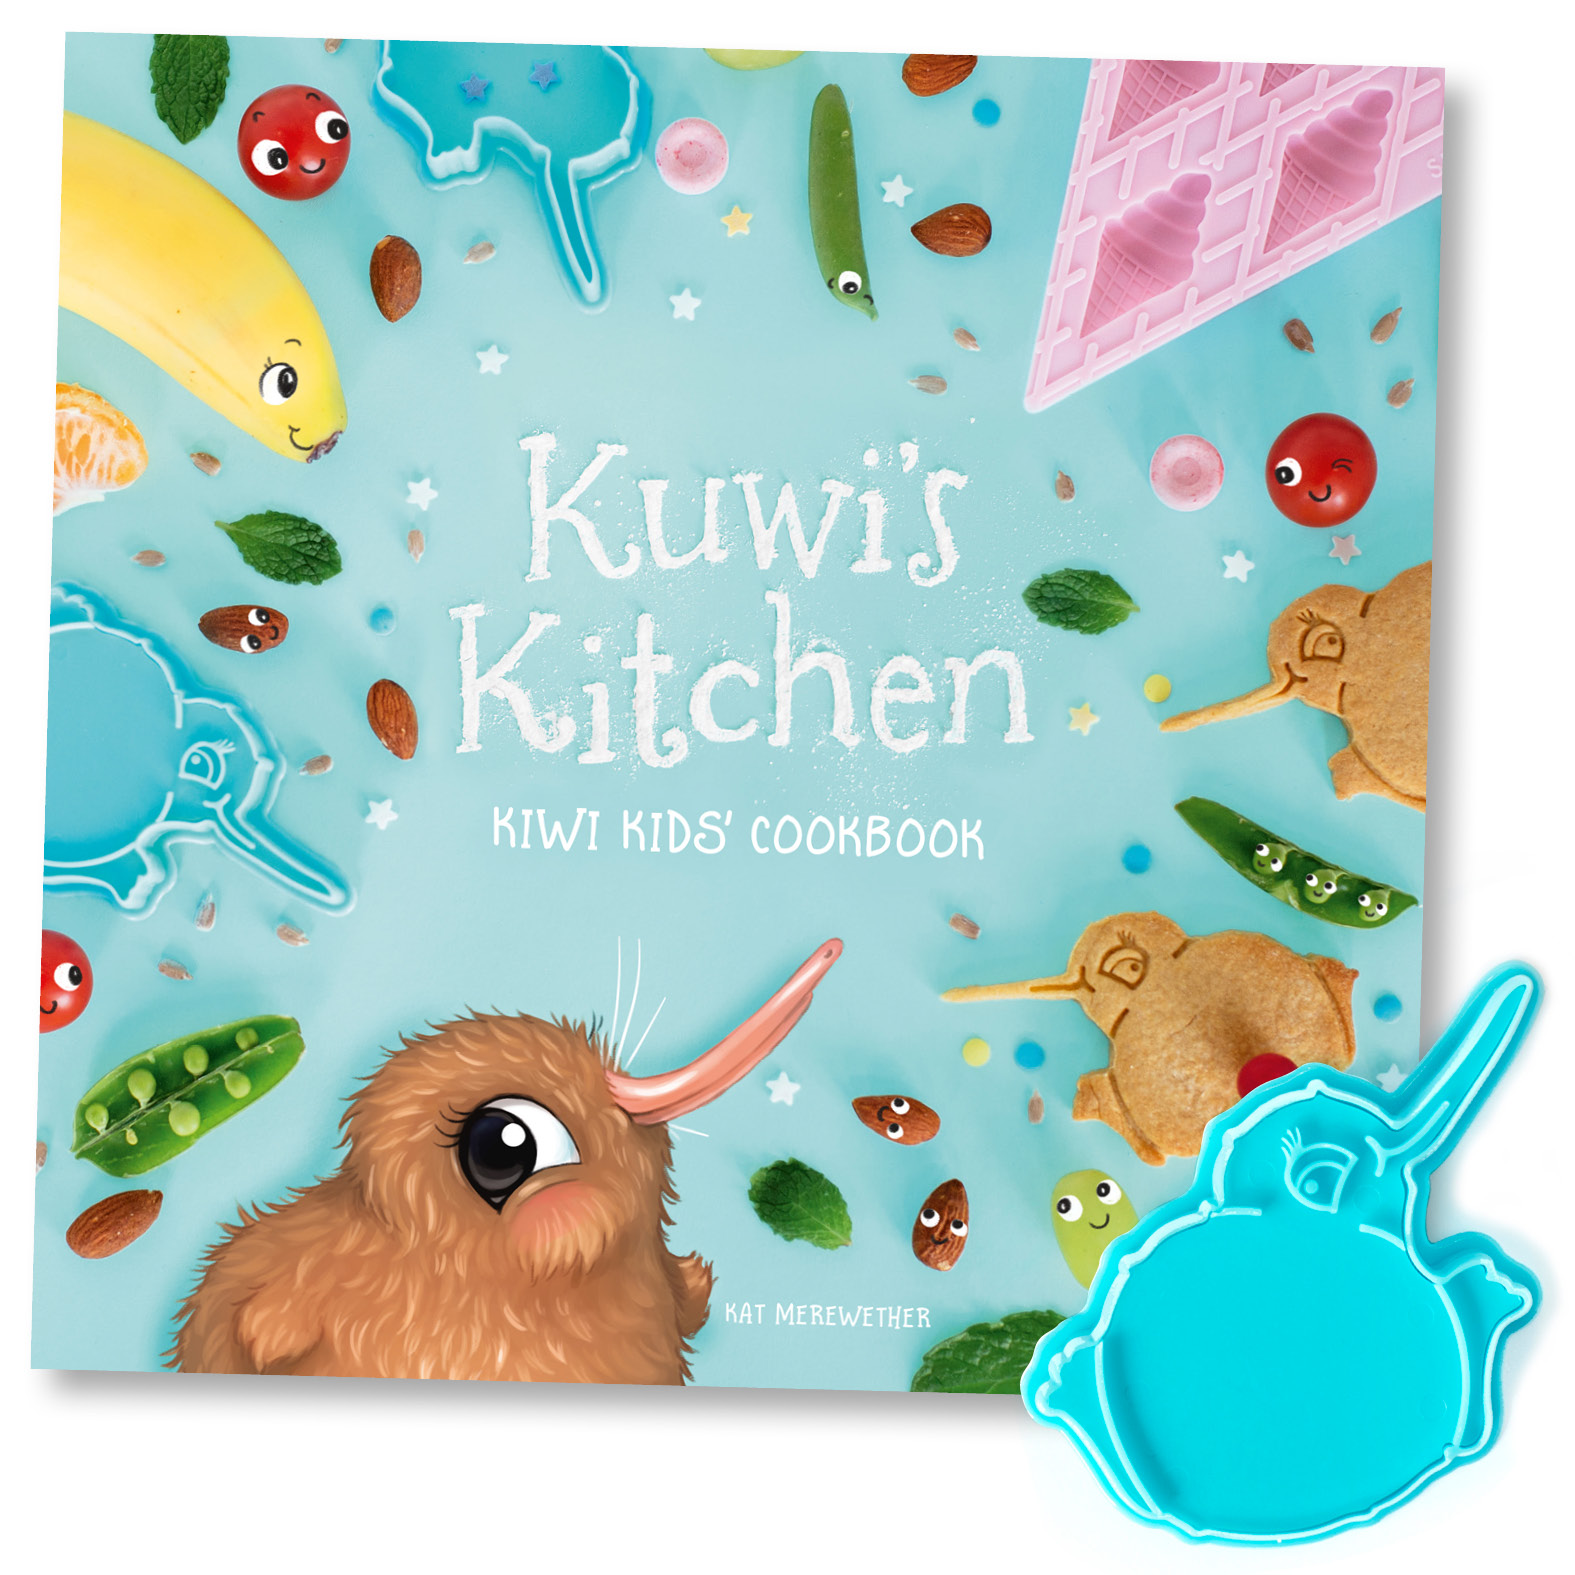 Kuwi the Kiwi Bikkie Cutter - Free with 'Kuwi's Kitchen' or sold separately.By Kat Merewether.